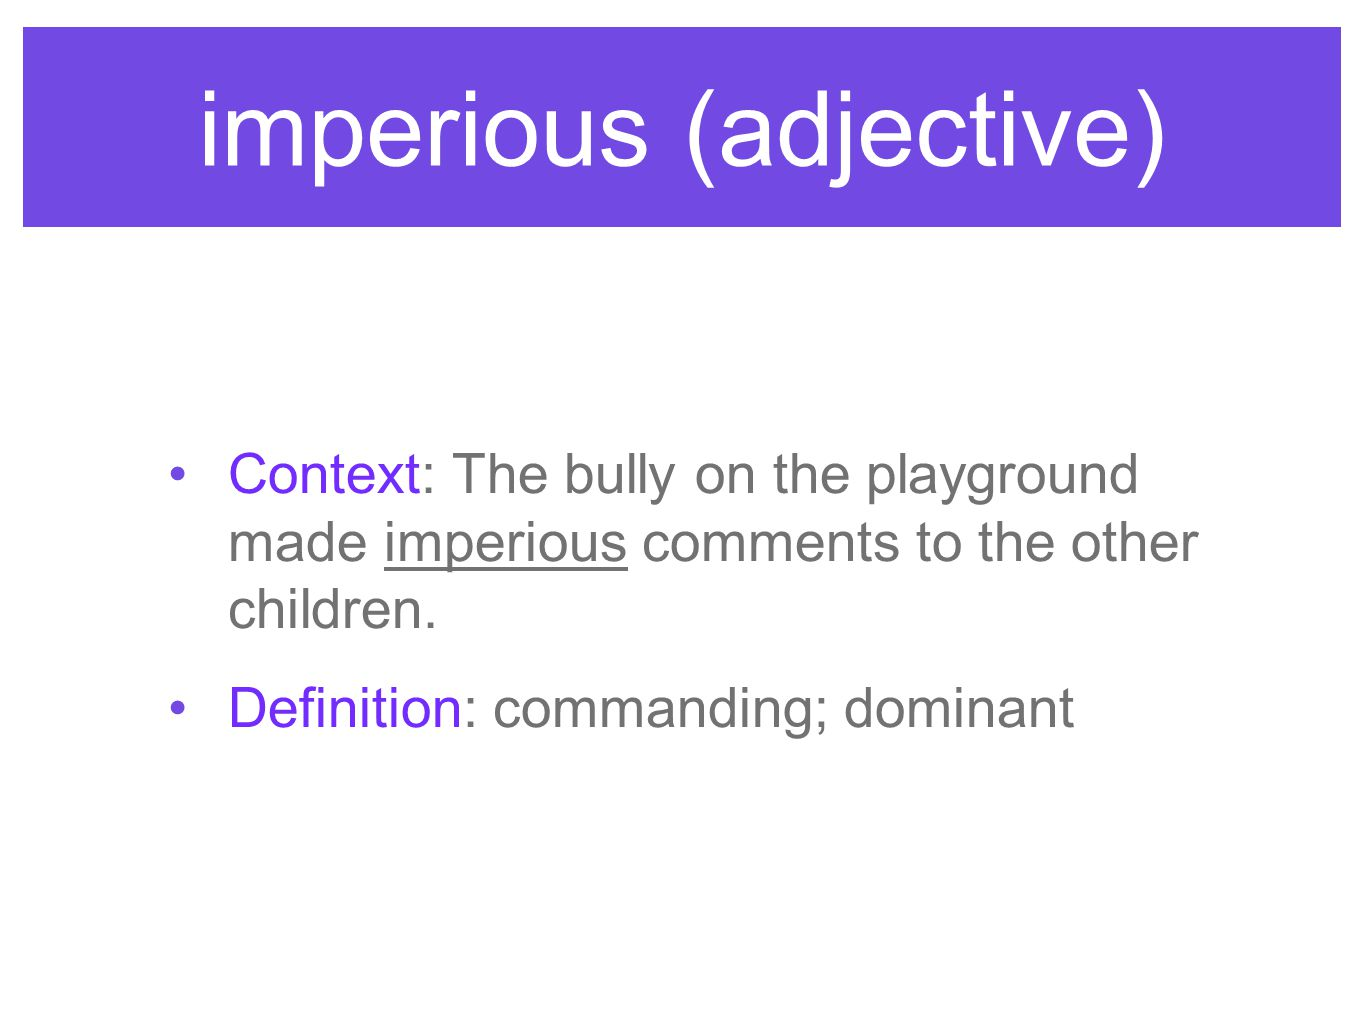 imperious (adjective) Context: The bully on the playground made imperious comments to the other children. Definition: commanding; dominant